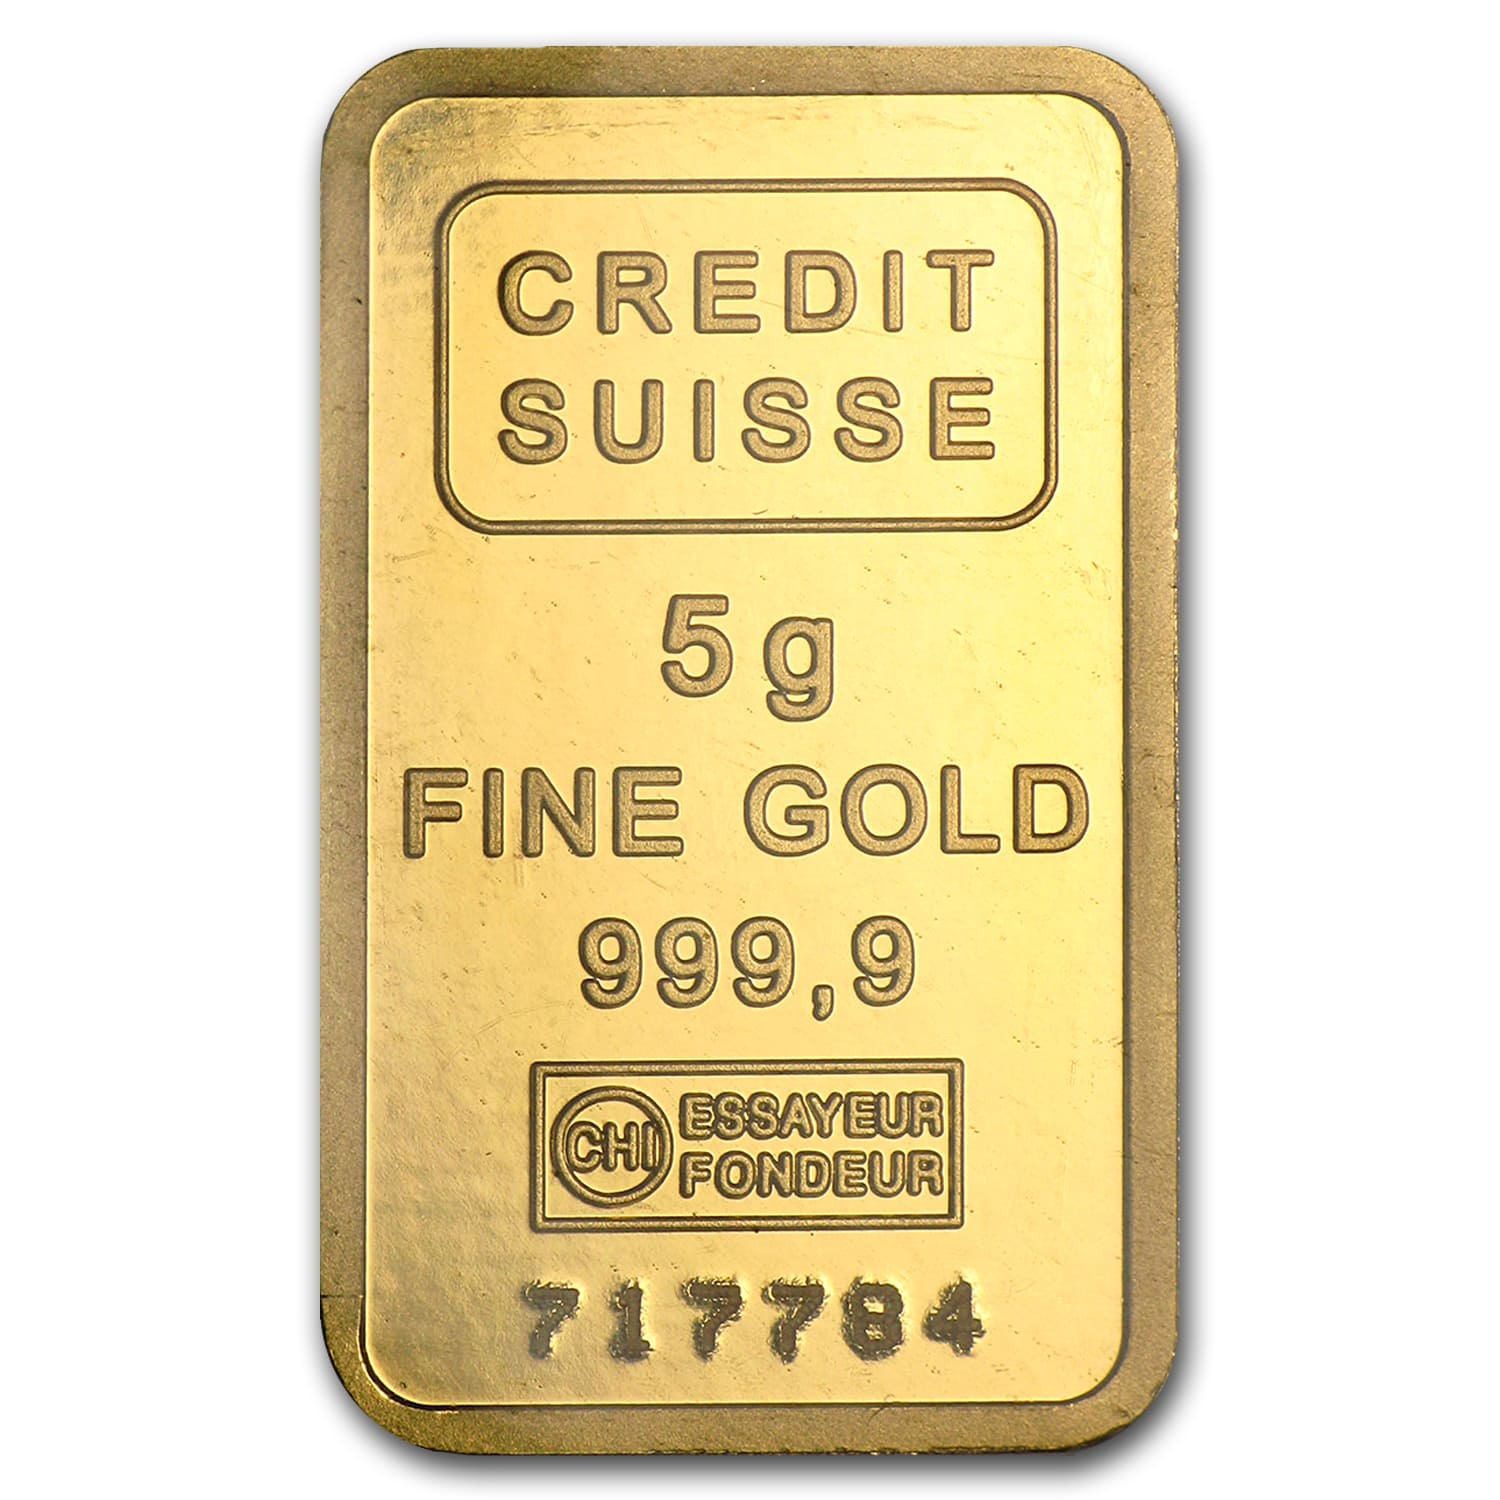 5 gram Gold Bars - Credit Suisse (Statue of Liberty)